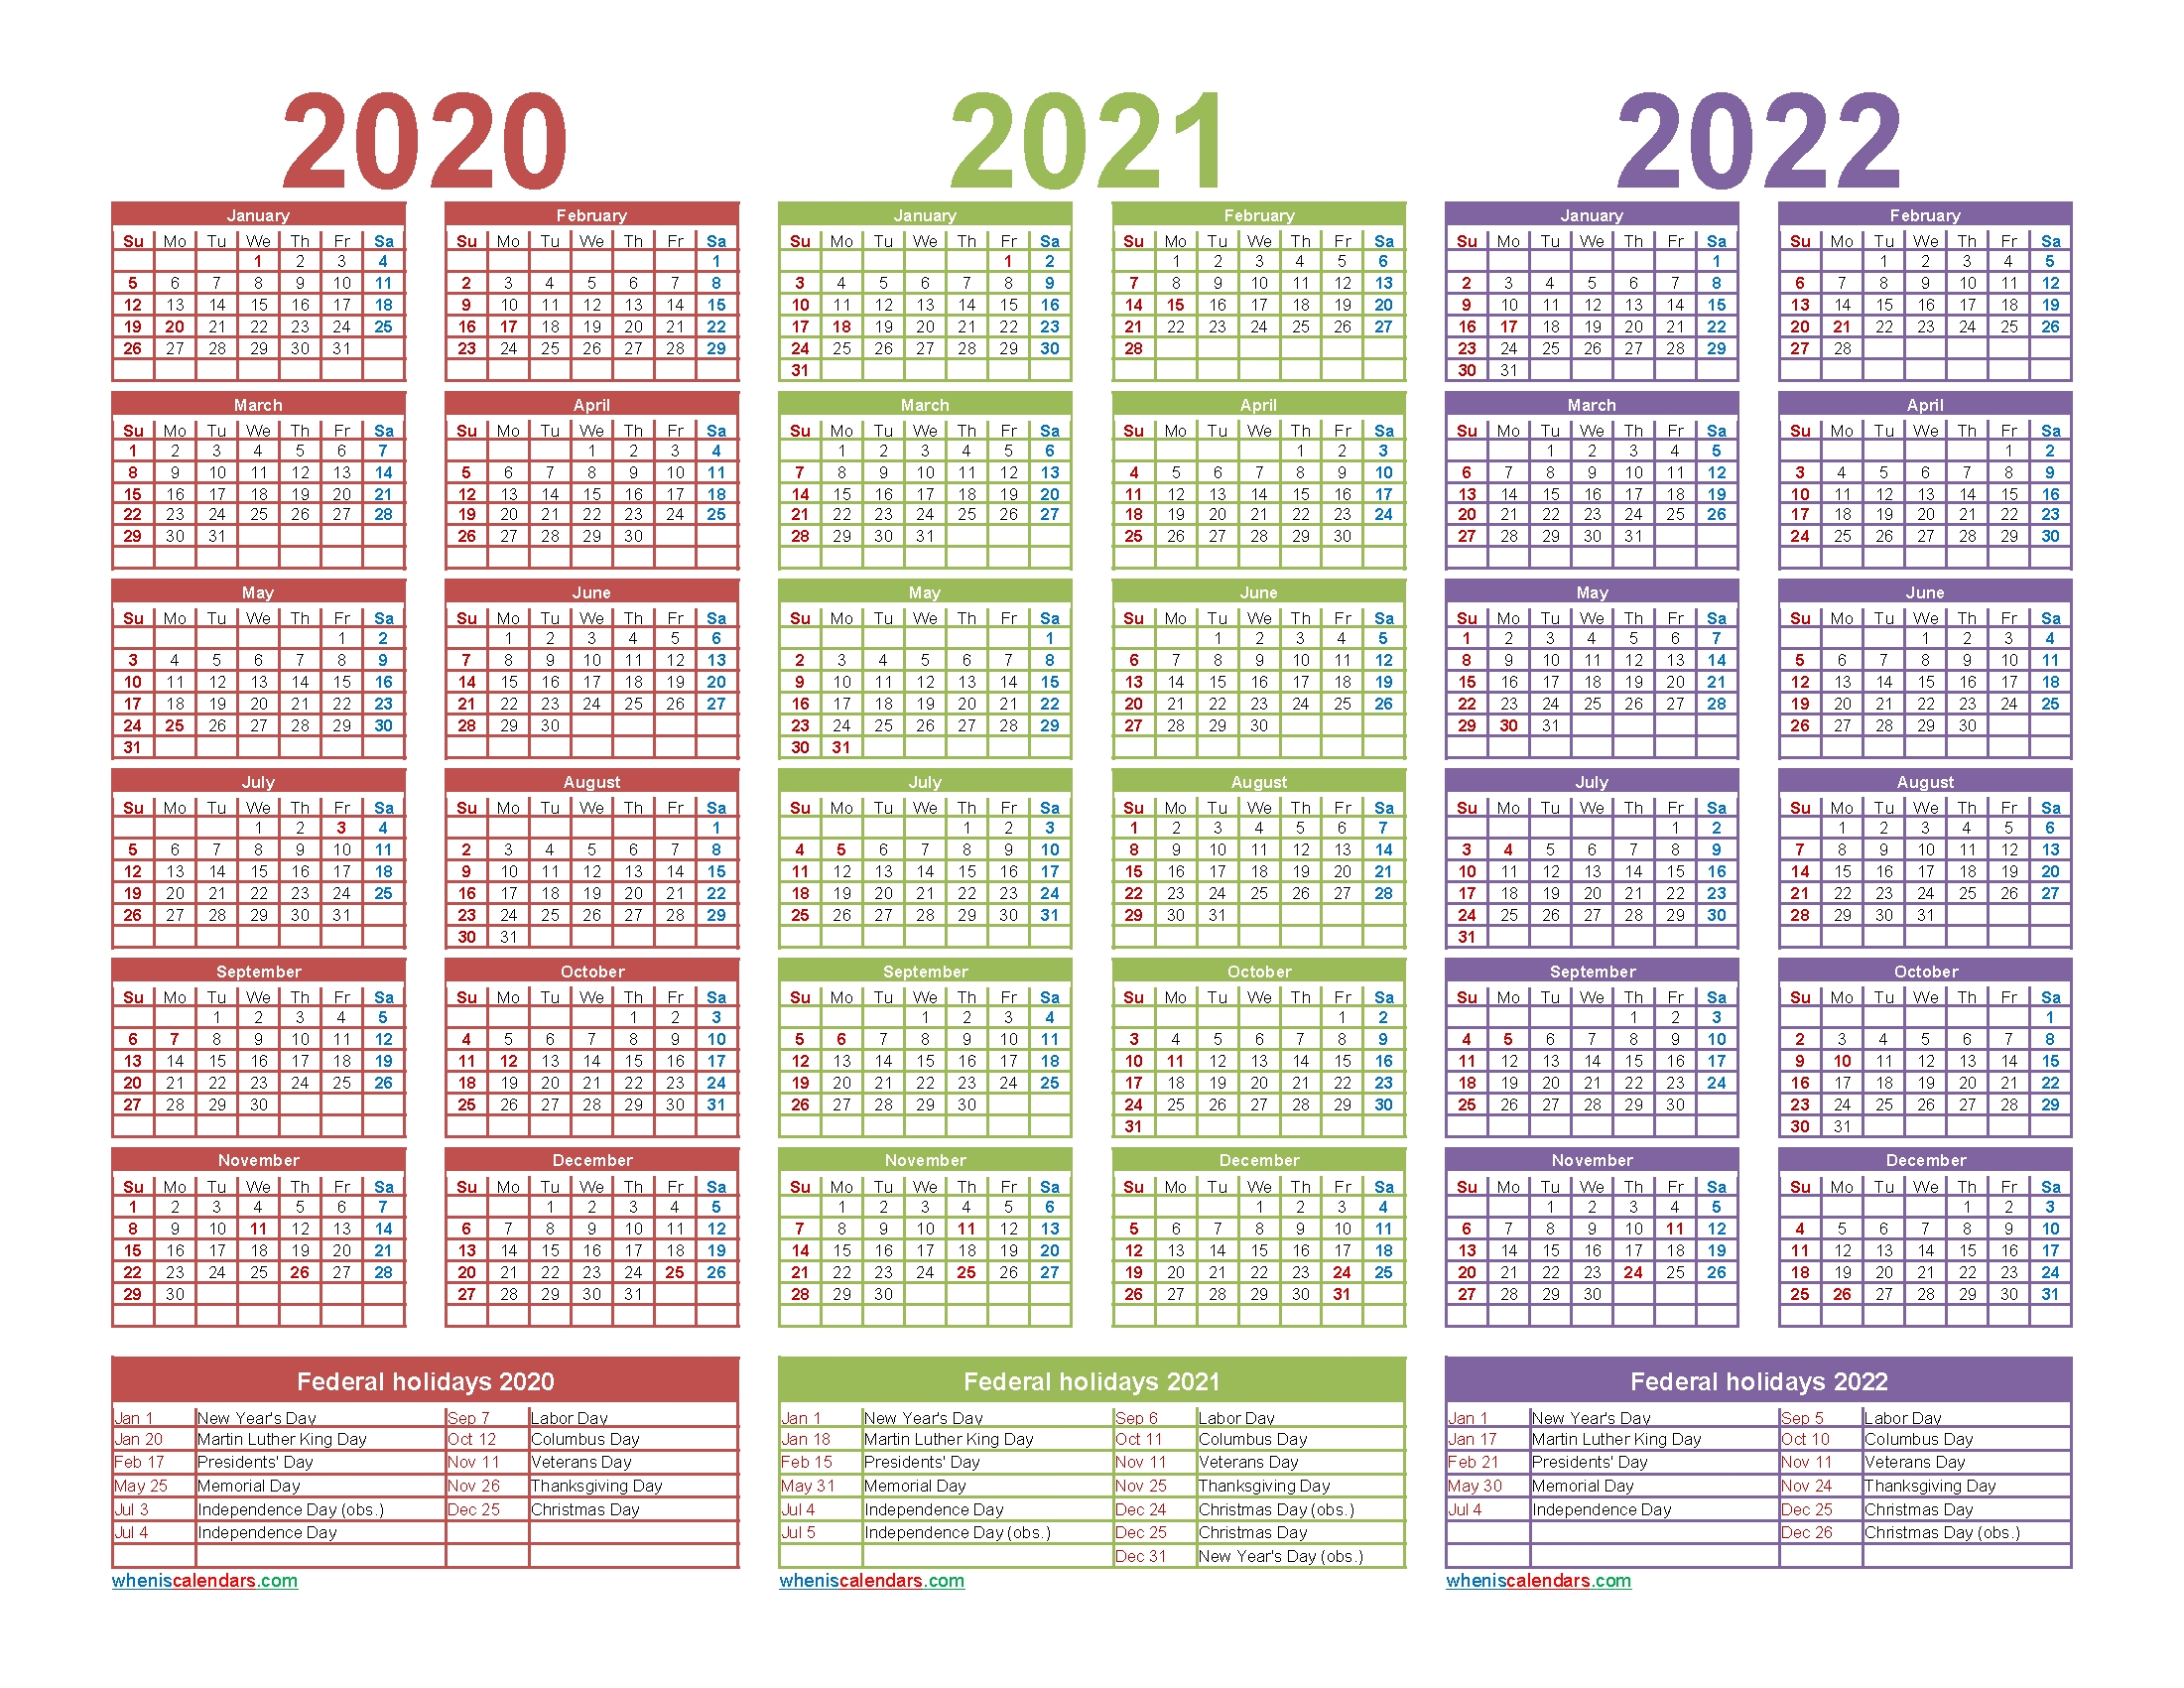 3 Year Calendar 2020 To 2022 Printable | Free Printable 2020 with Calendars In 2020 2021 And 2022